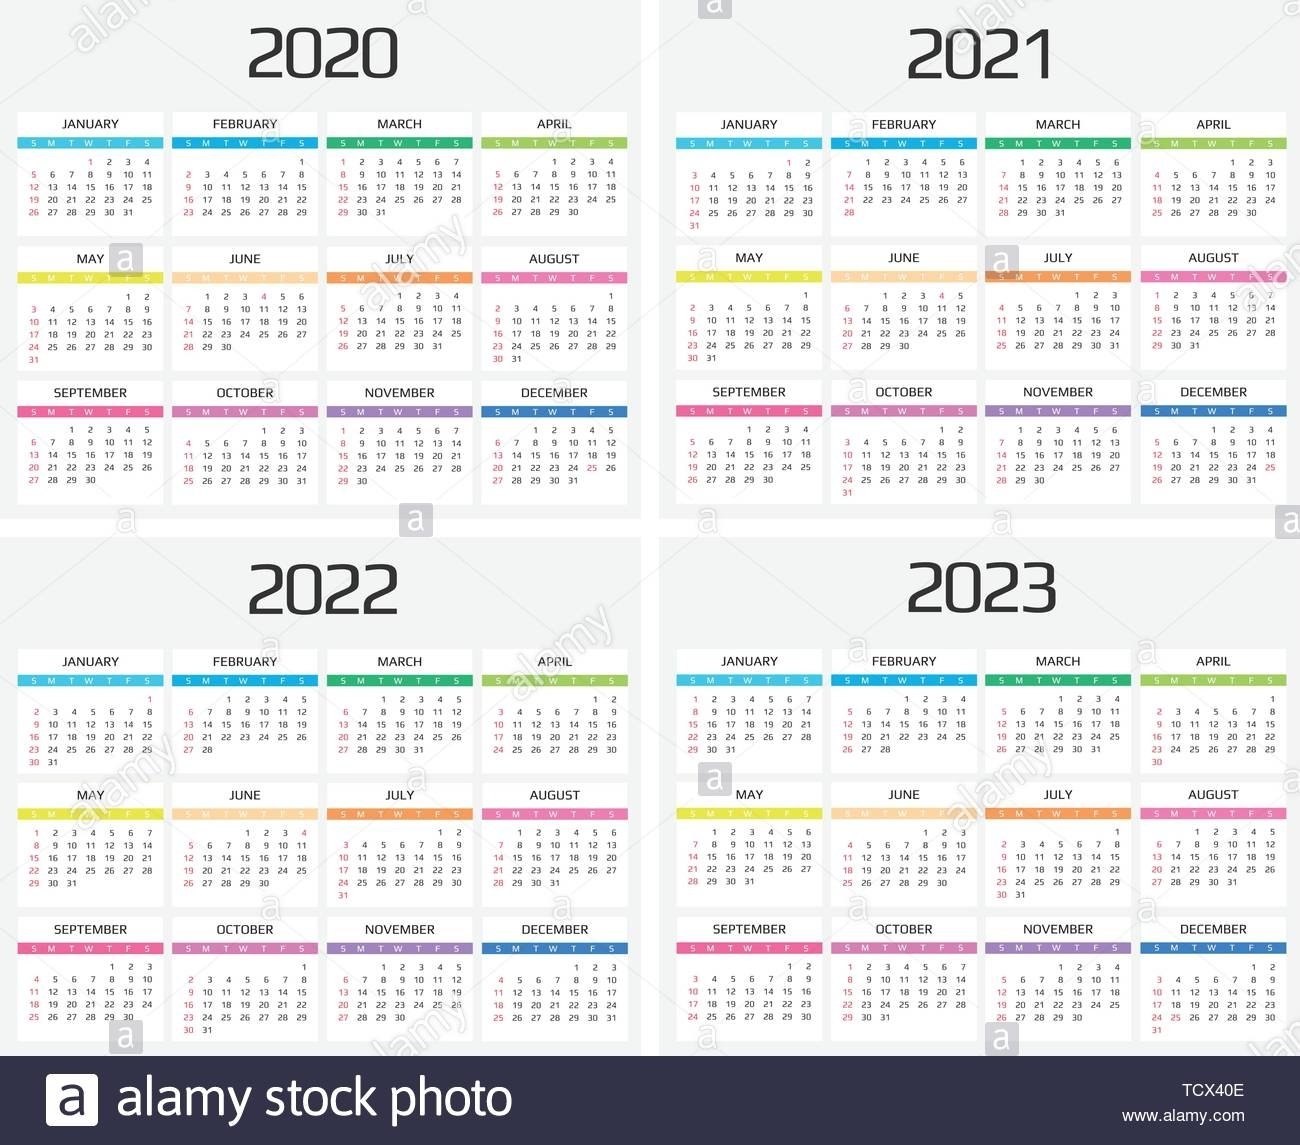 Calendar 2020, 2021, 2022, 2023 Template. 12 Months. Include for Calendar For 2020 To 2023